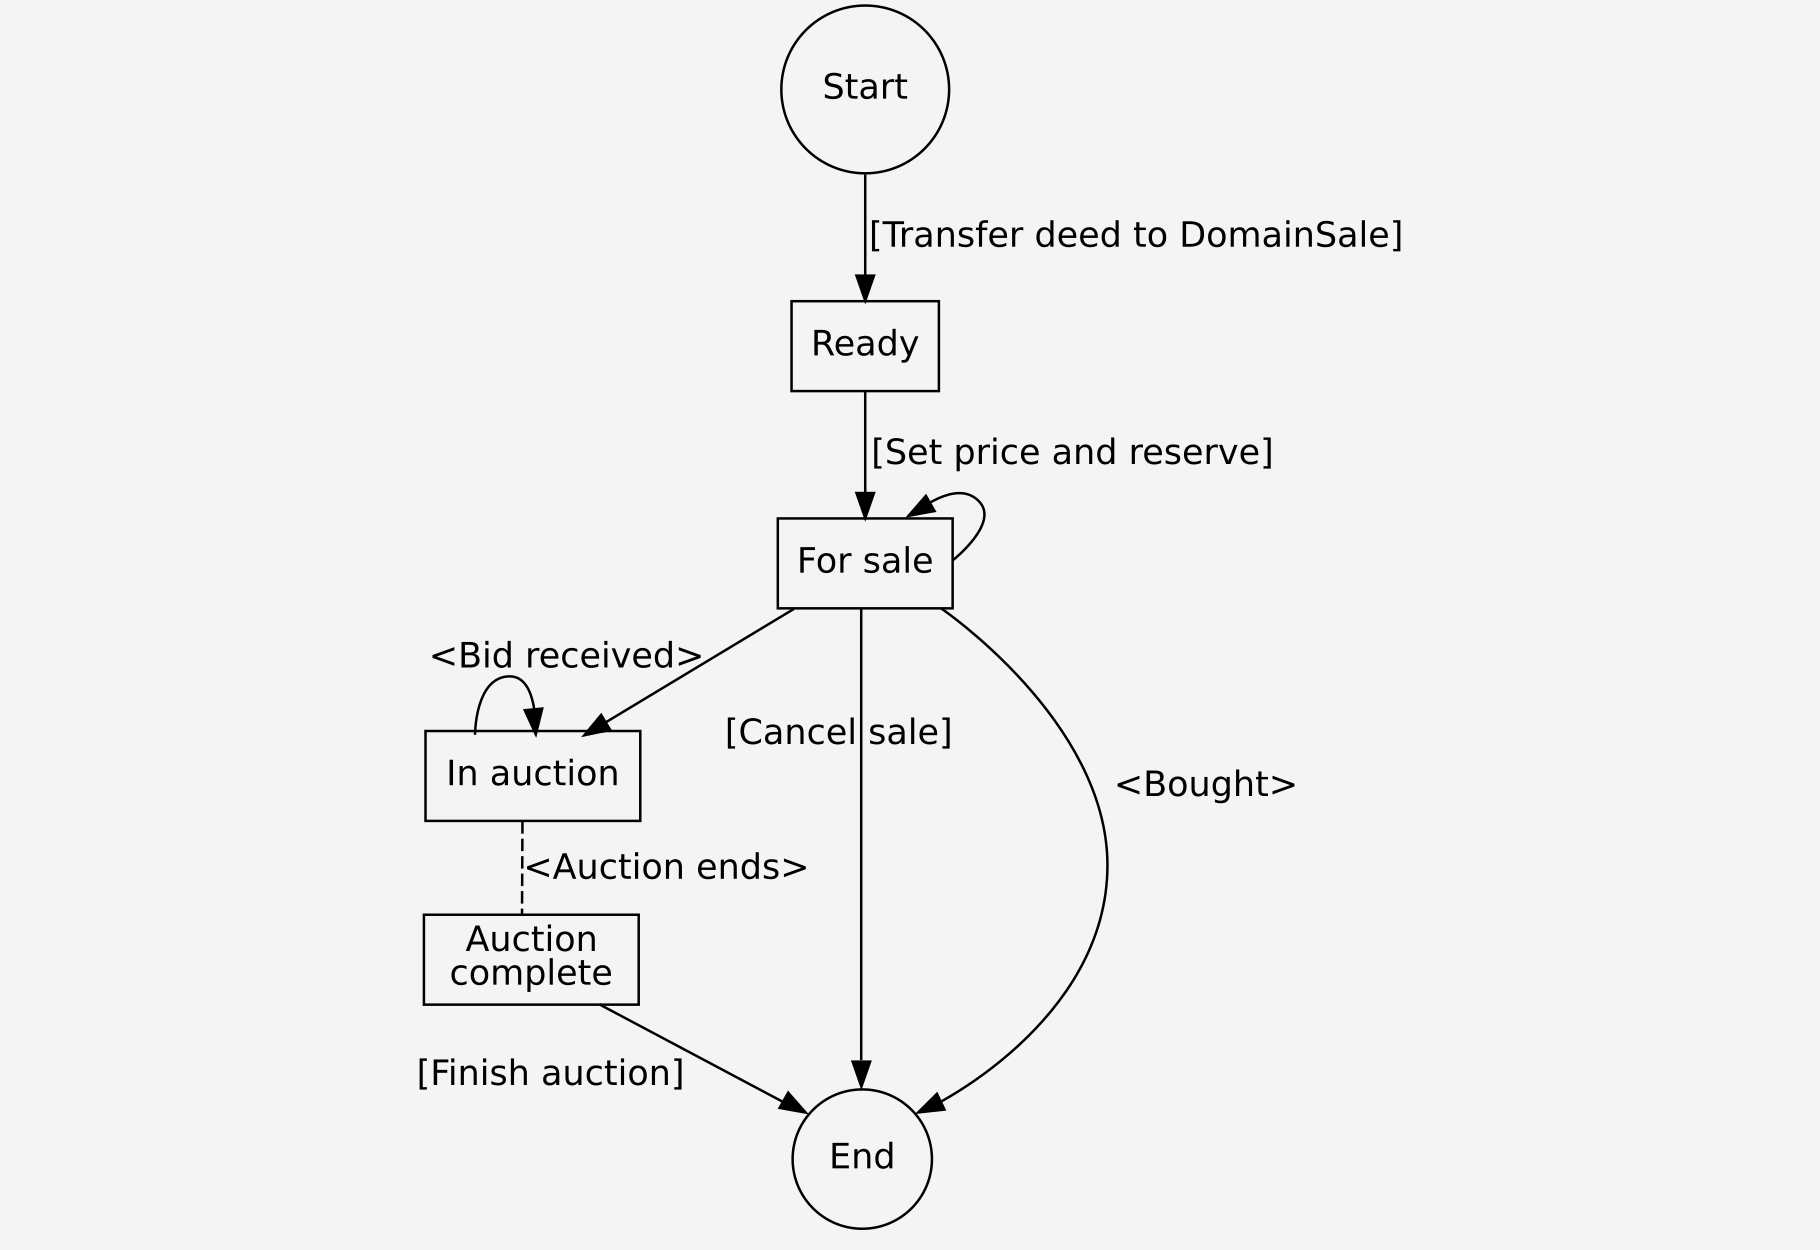 image from DomainSale: an on-chain secondary ENS market